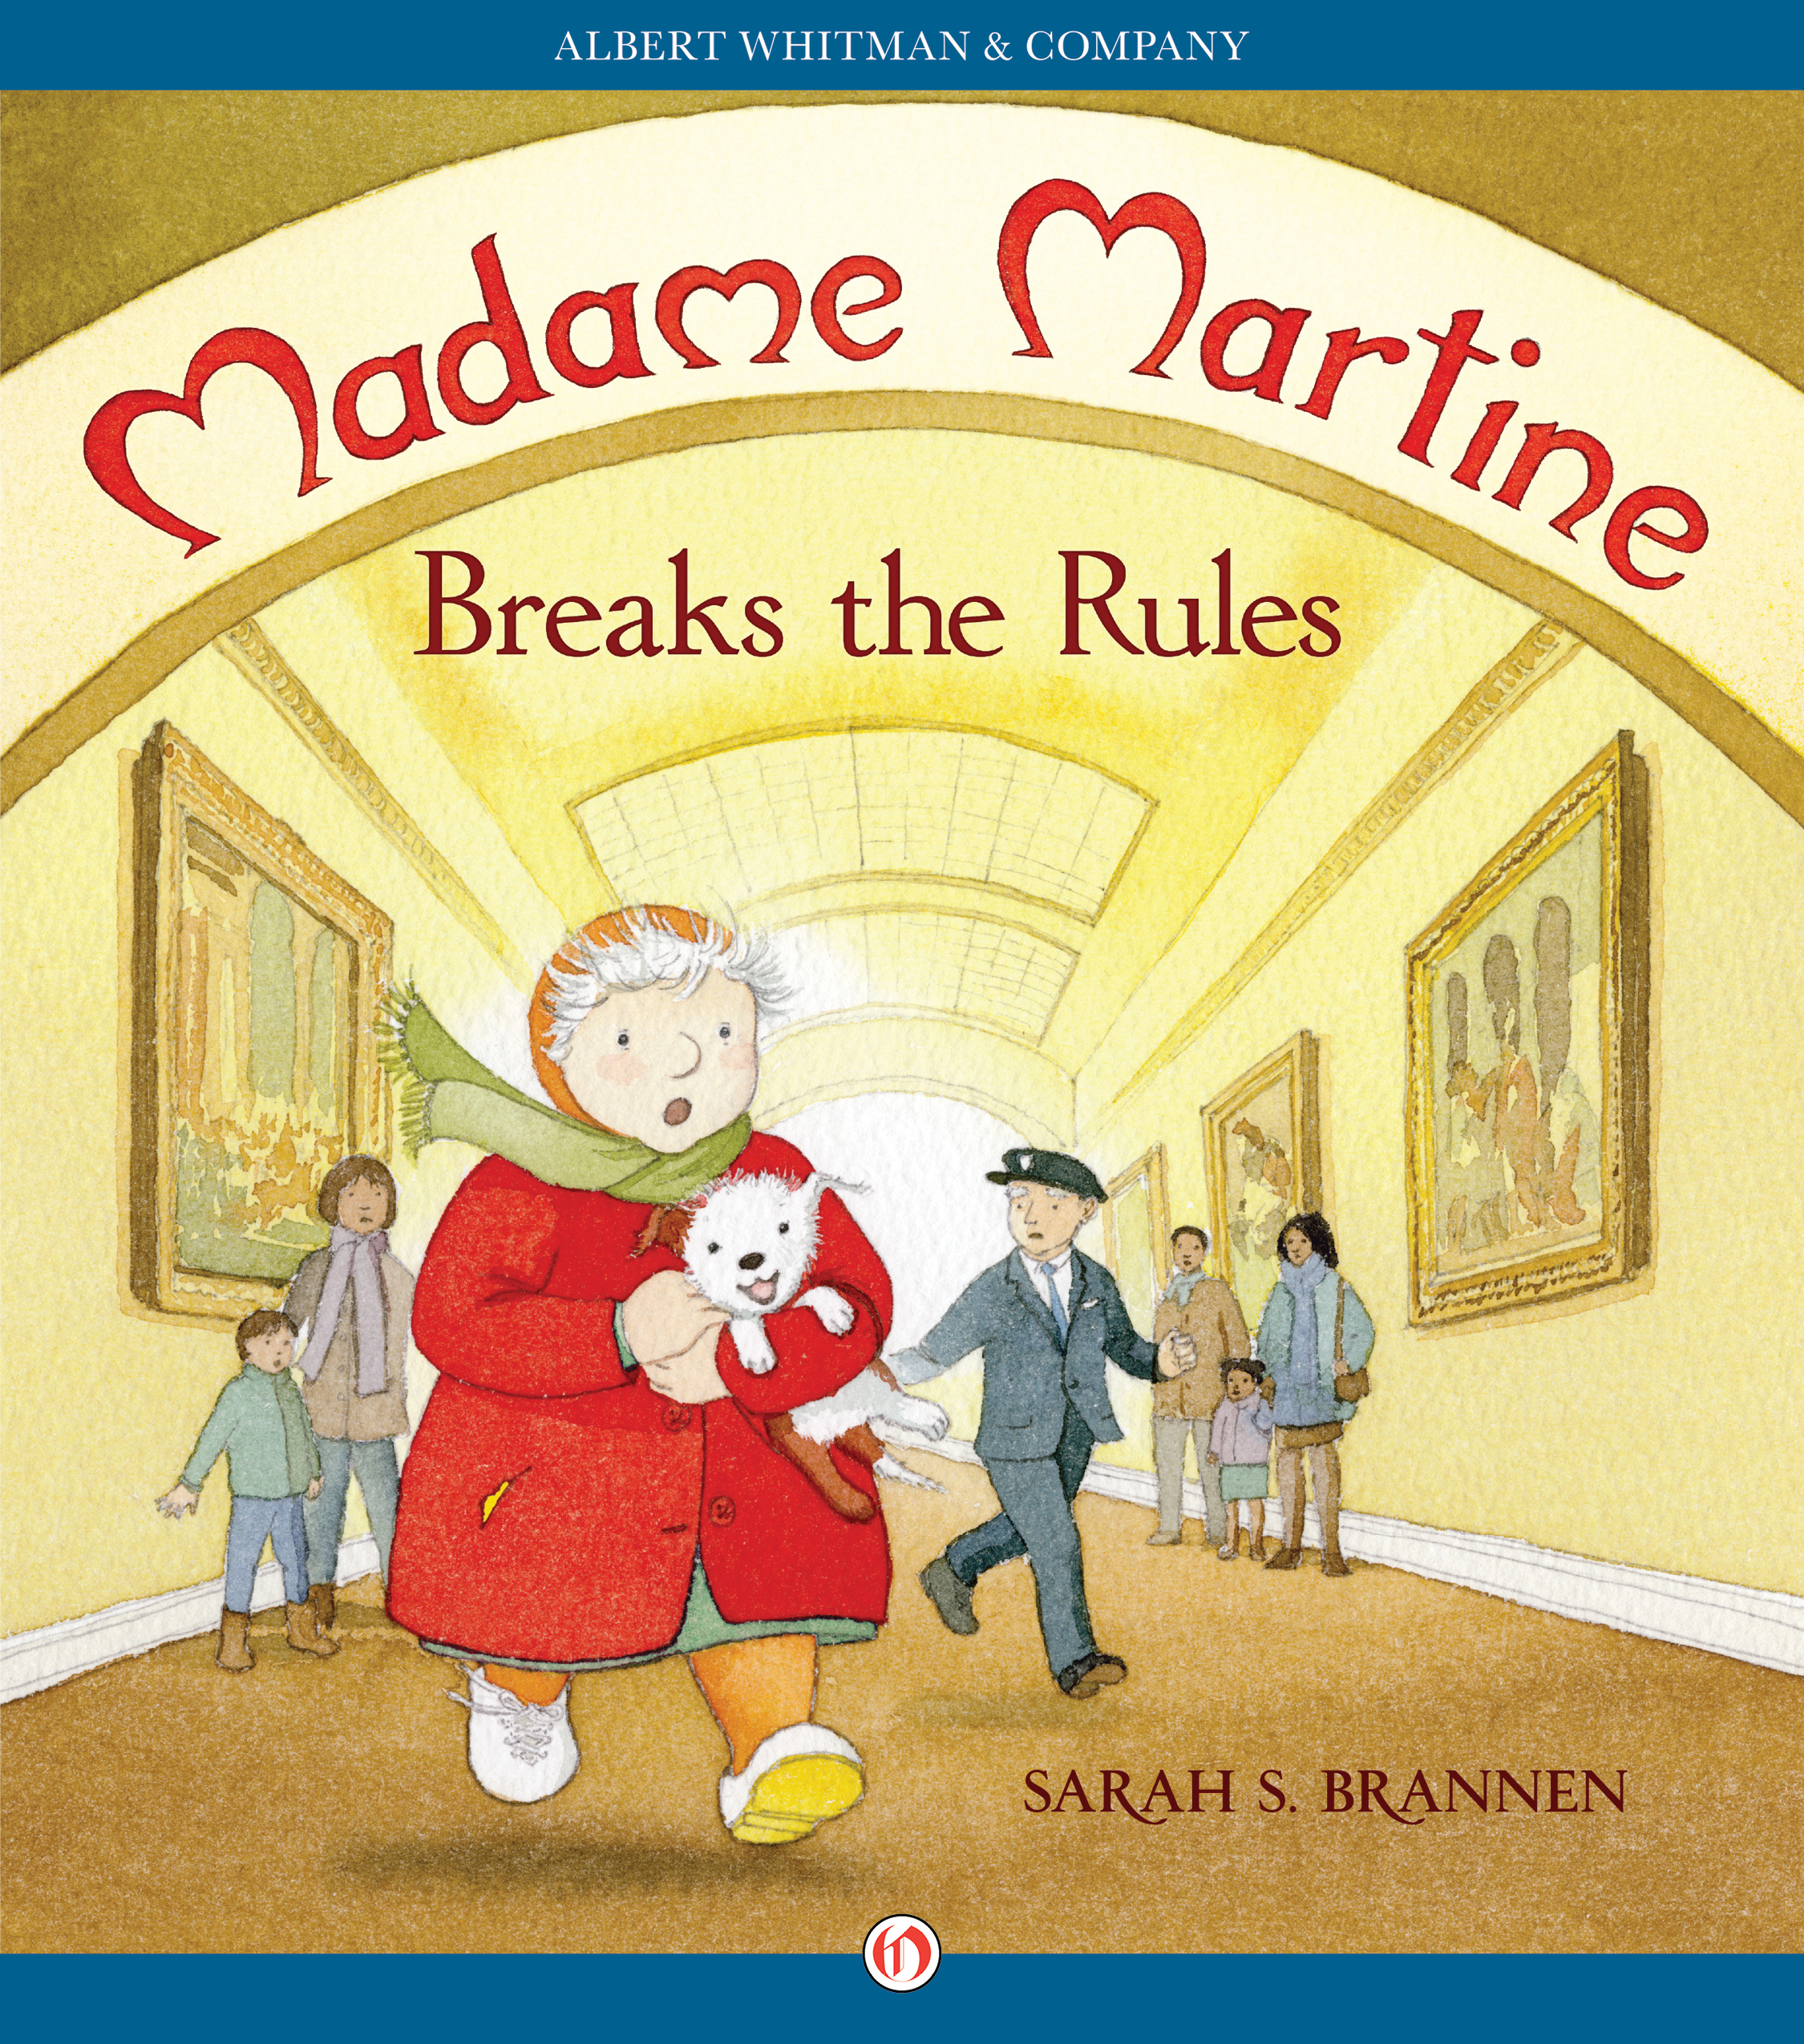 Madame Martine Breaks the Rules  by  Sarah S. Brannen